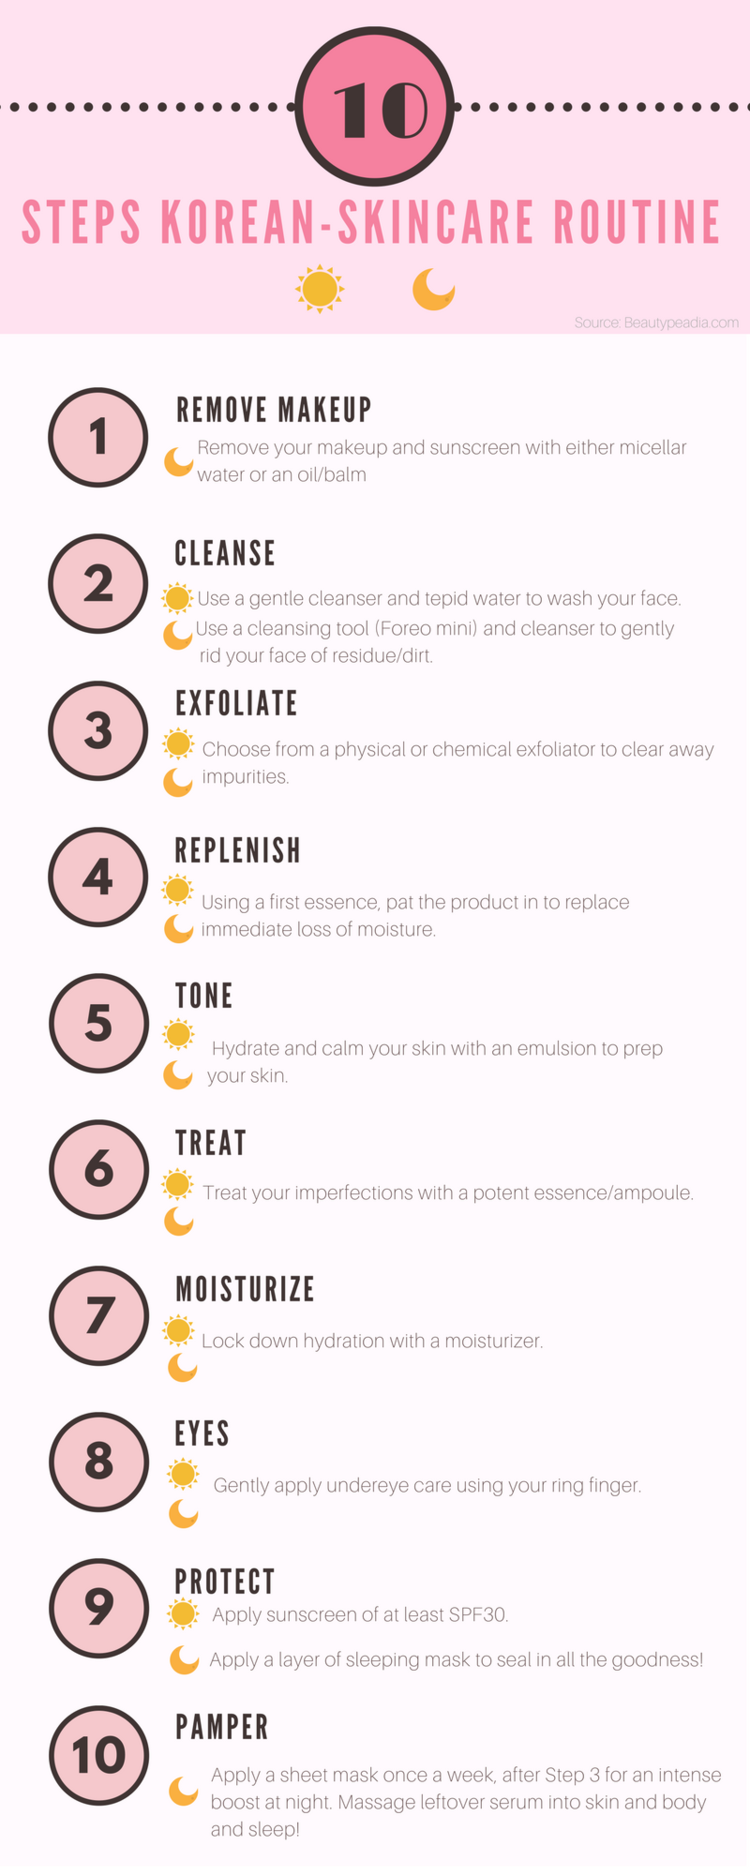 I tried the 10STEPS Koreanskincare routine